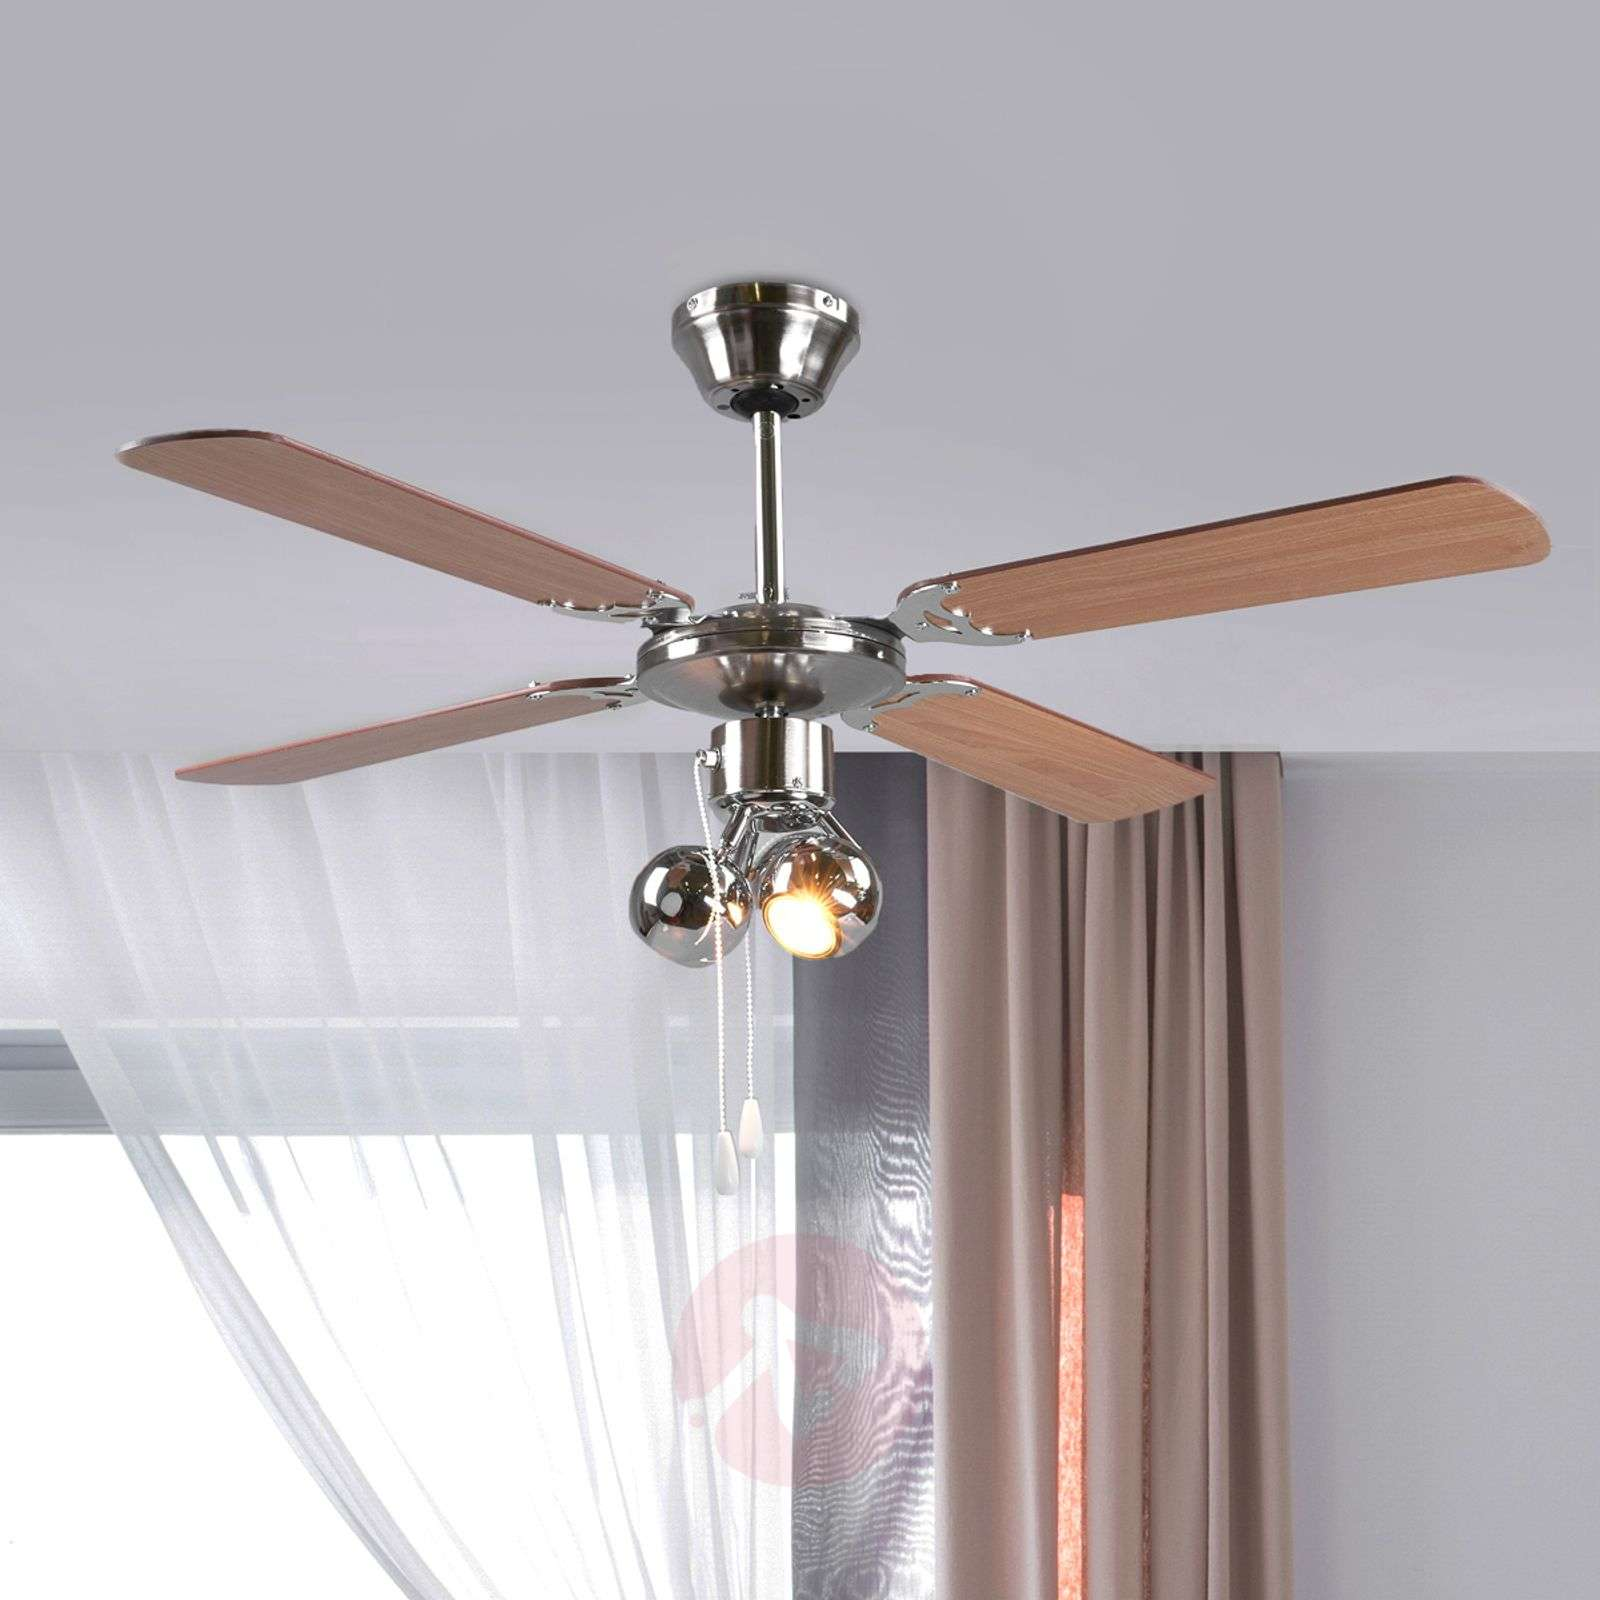 Four Blade Ceiling Fan Gunda, With Light